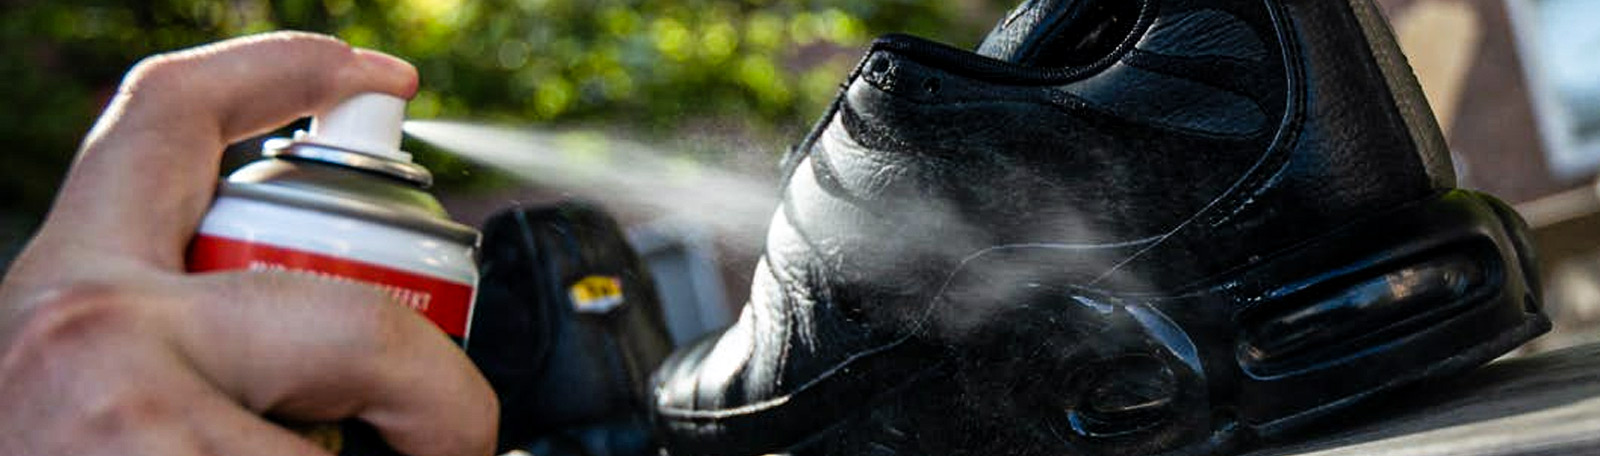 Footwear - Cleaning & Protection Category